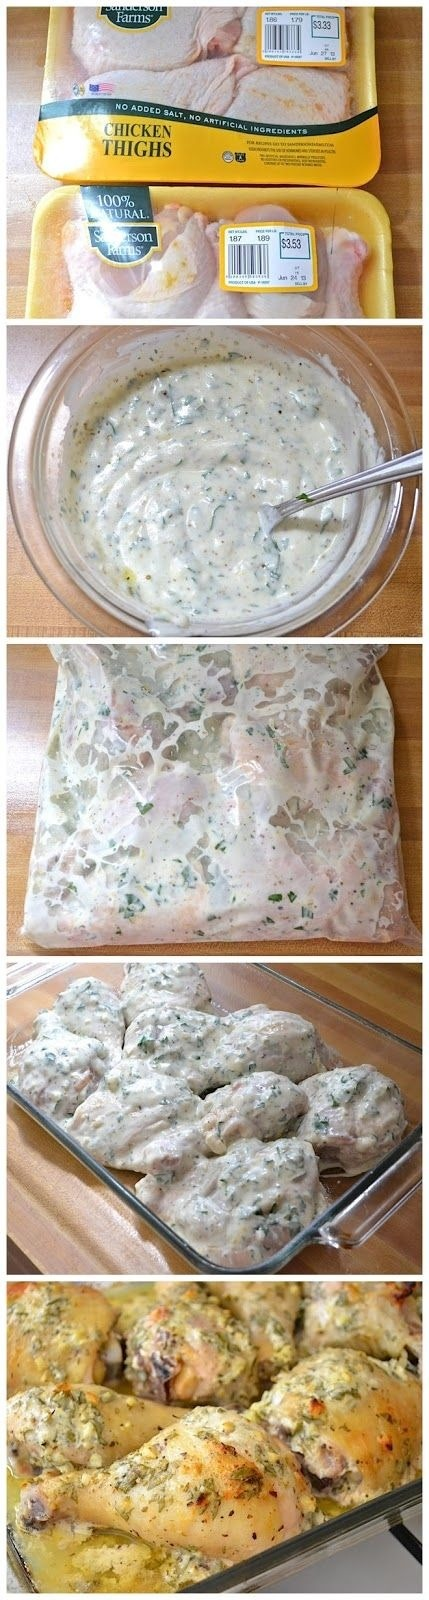 What you need: 3 1/2 to 4 lbs. of chicken pieces 2 tbsp. dried oregano 4 bunch of fresh parsley 4 cloves of garlic, minced 1 medium lemon (zest and juice from half) 2 tsp. salt Sprinkle of pepper 2 tbsp. olive oil 1 c. plain yogurt